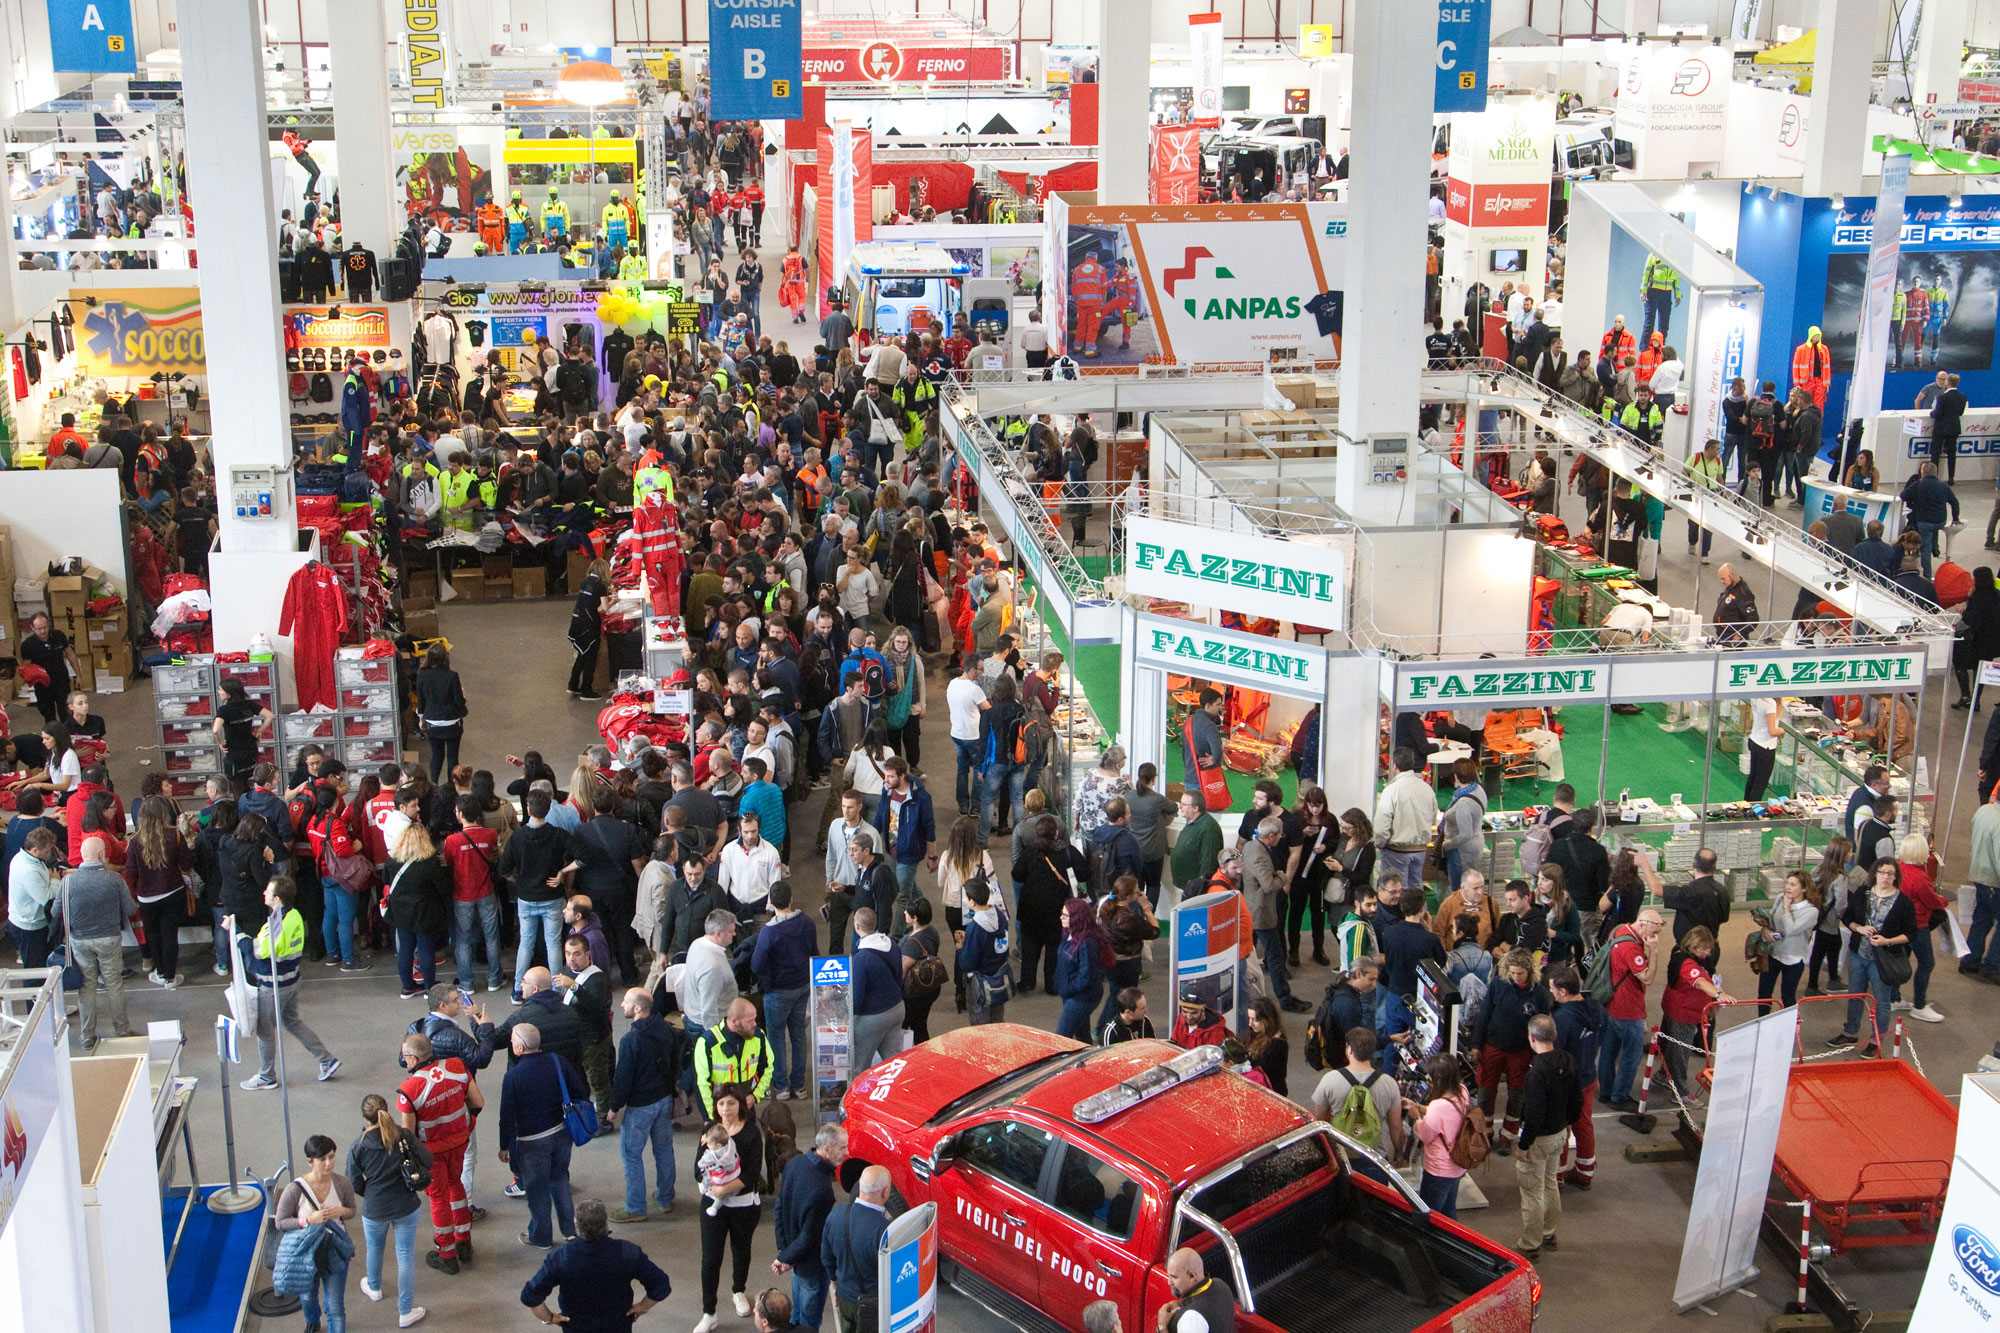 """REAS 2017 – Even more companies from abroad sign up for """"REAS powered by INTERSCHUTZ"""", from October 6th to 8th in Montichiari, Italy"""